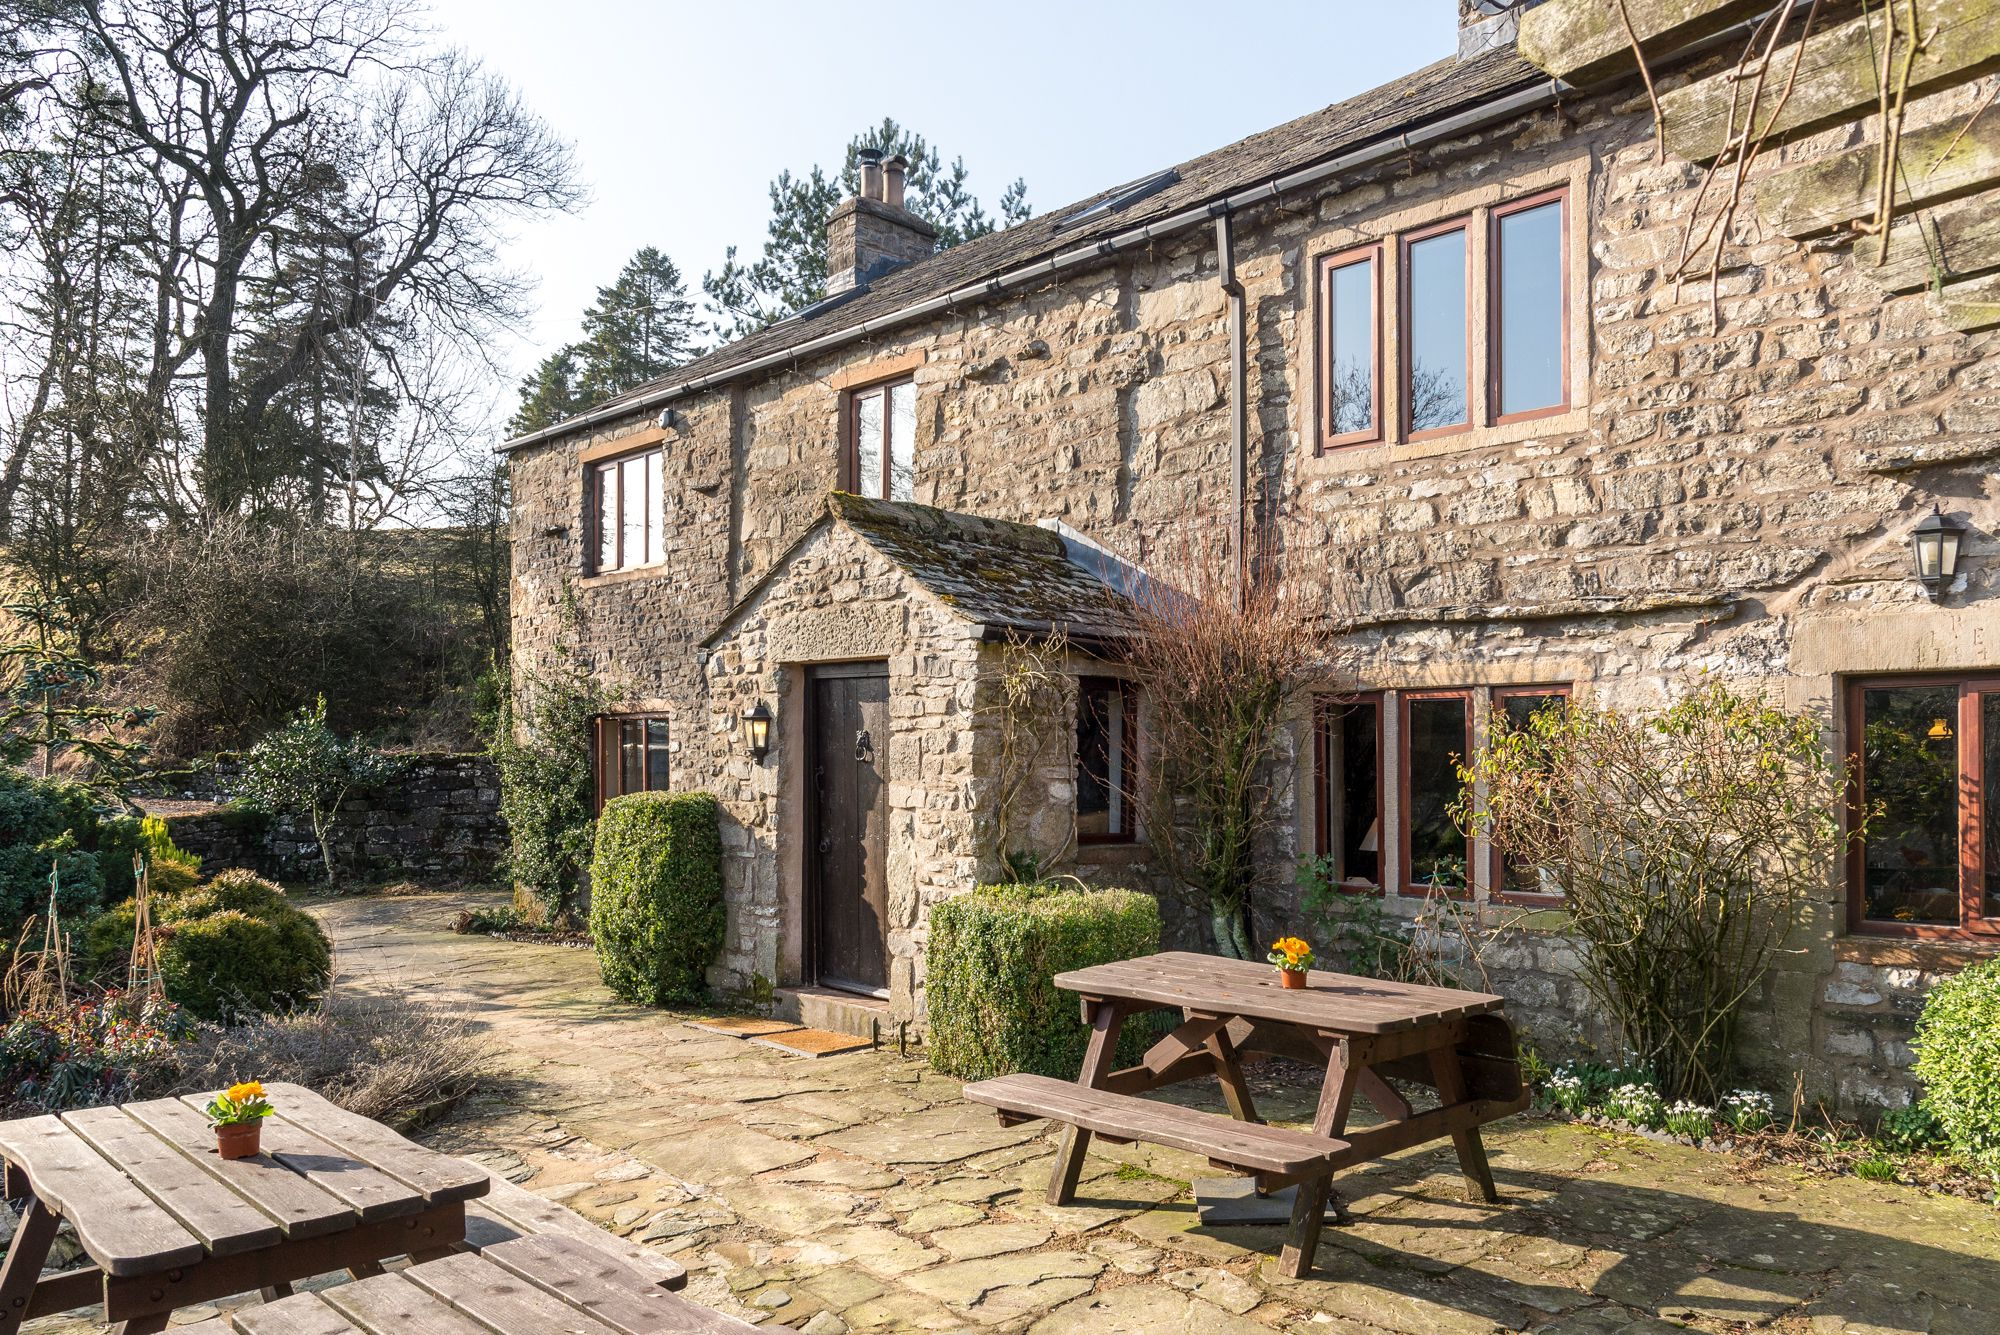 Self-Catering in North West England holidays at Cool Places